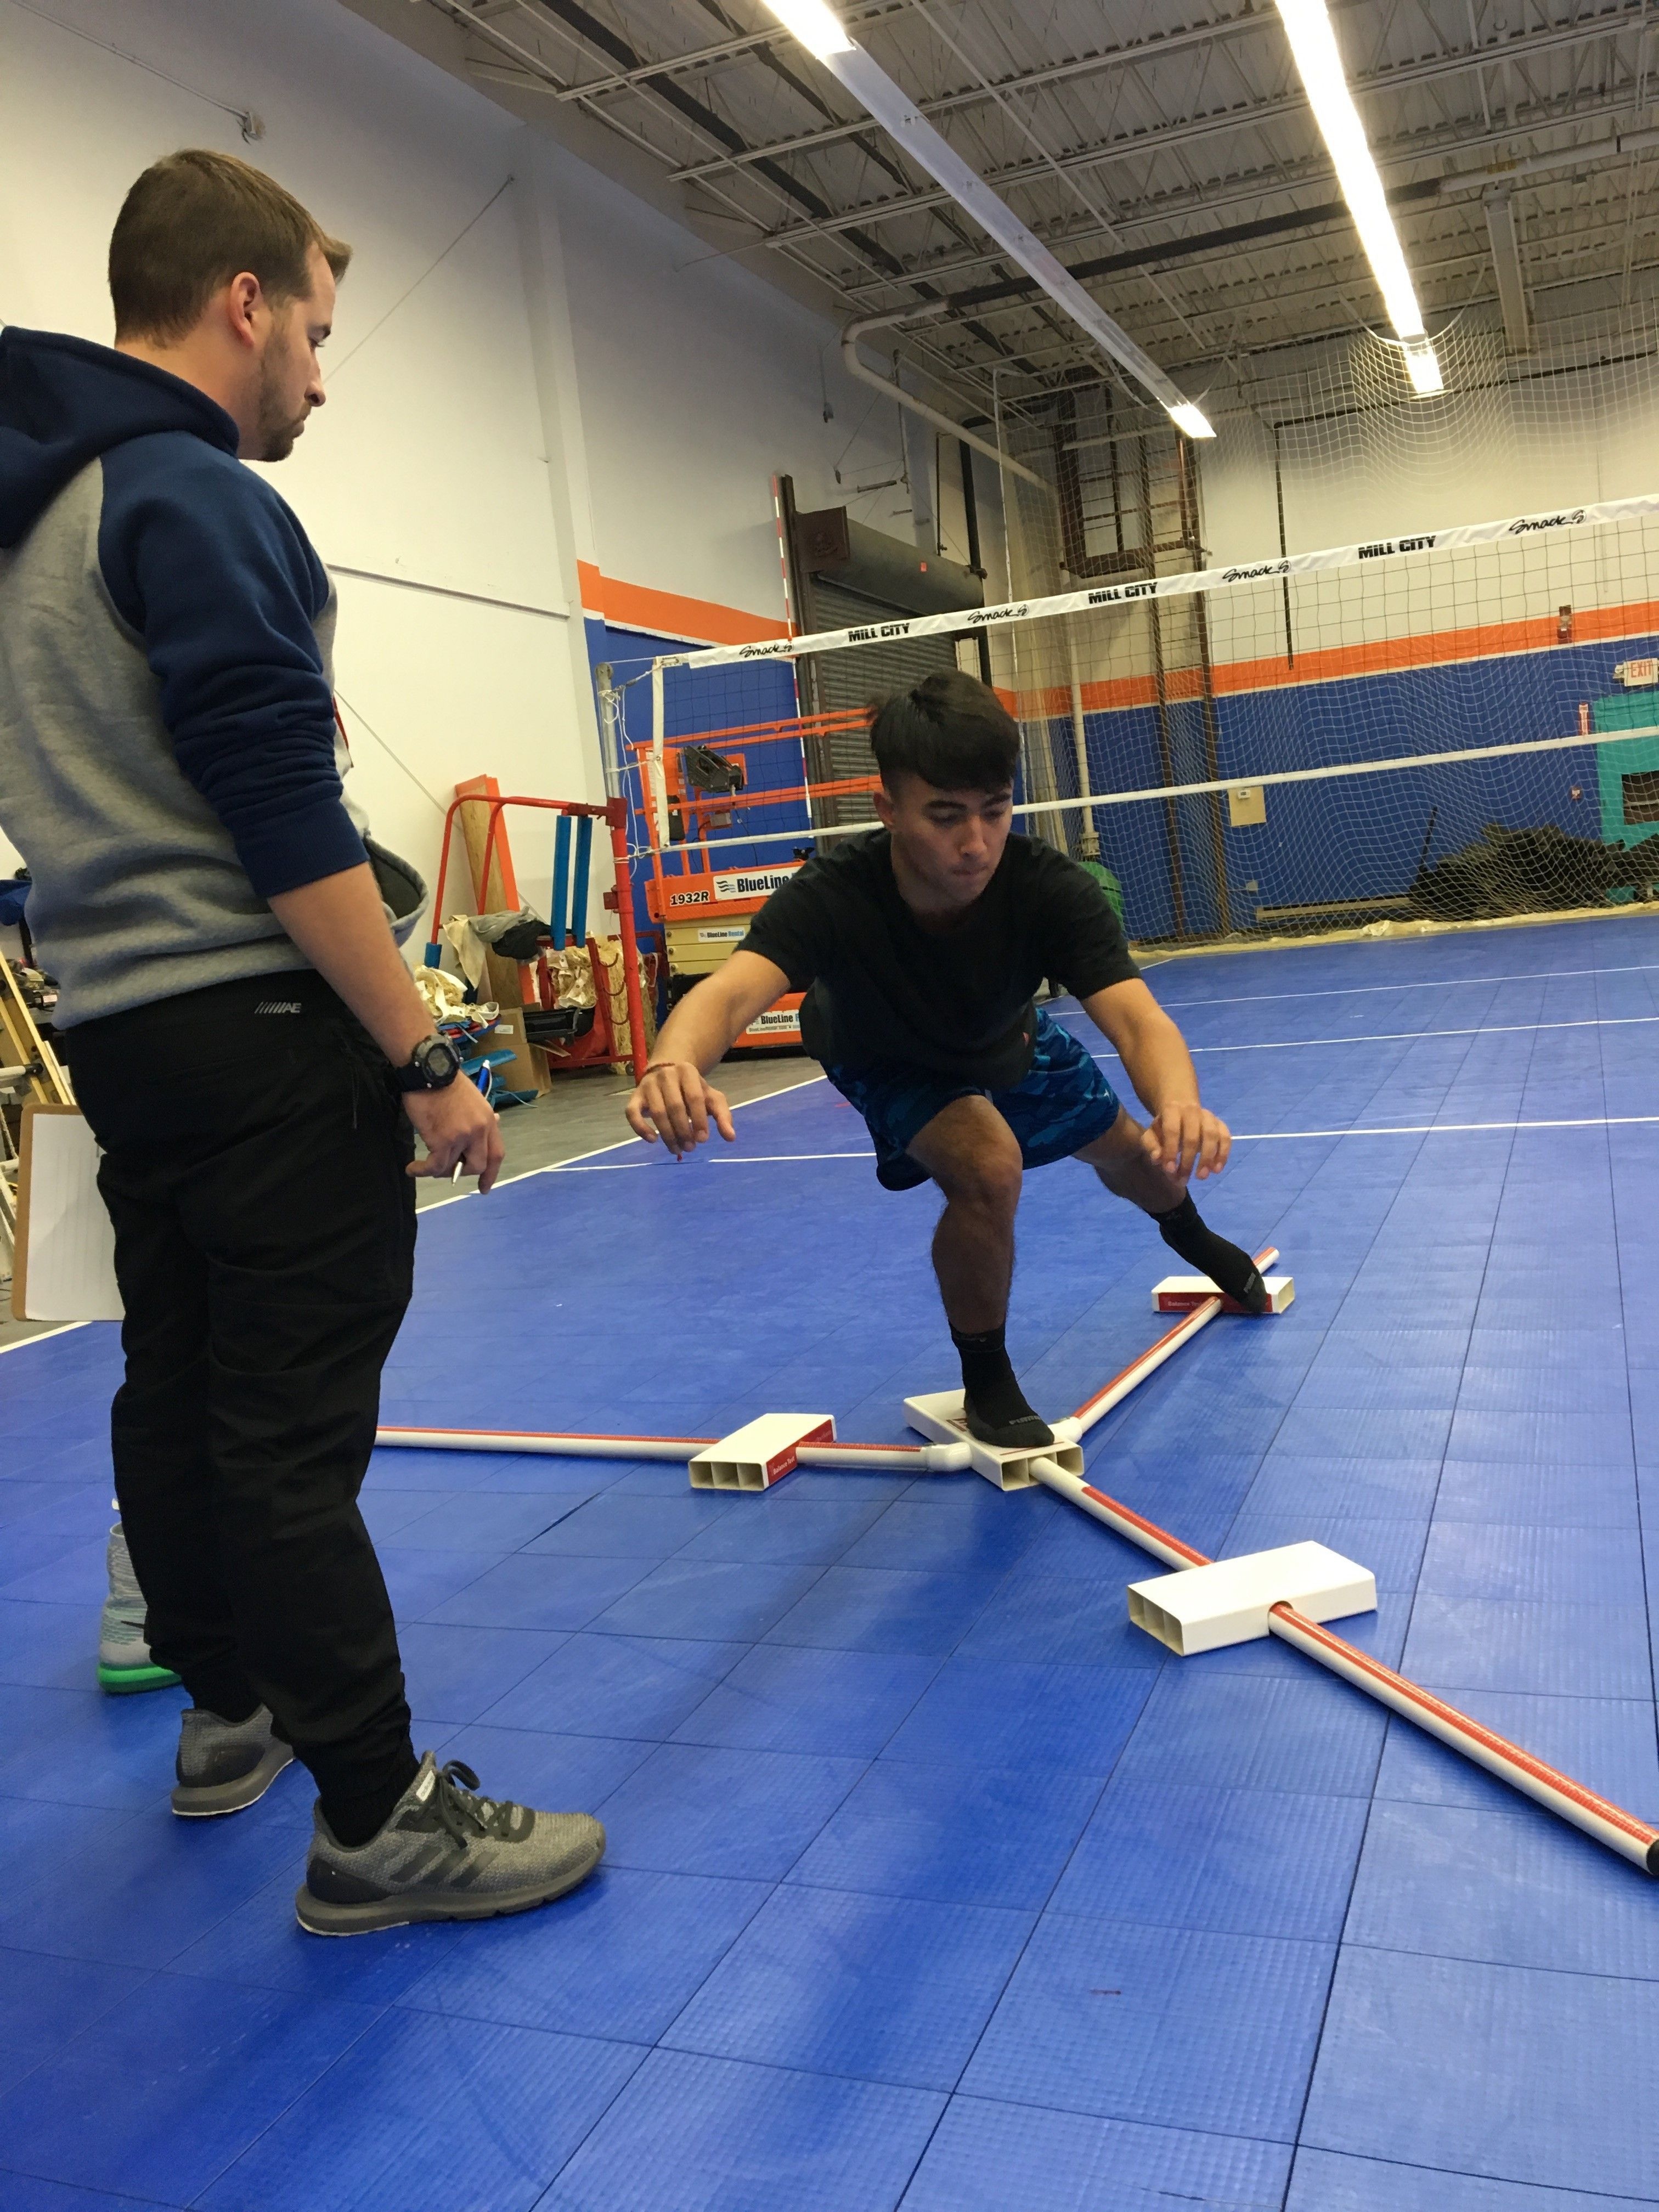 Complete Game Physical Therapy Performed Move 2 Perform Injury Risk Screenings For Mill City Volleyball Club Injury Prevention Physical Therapy Young Athletes